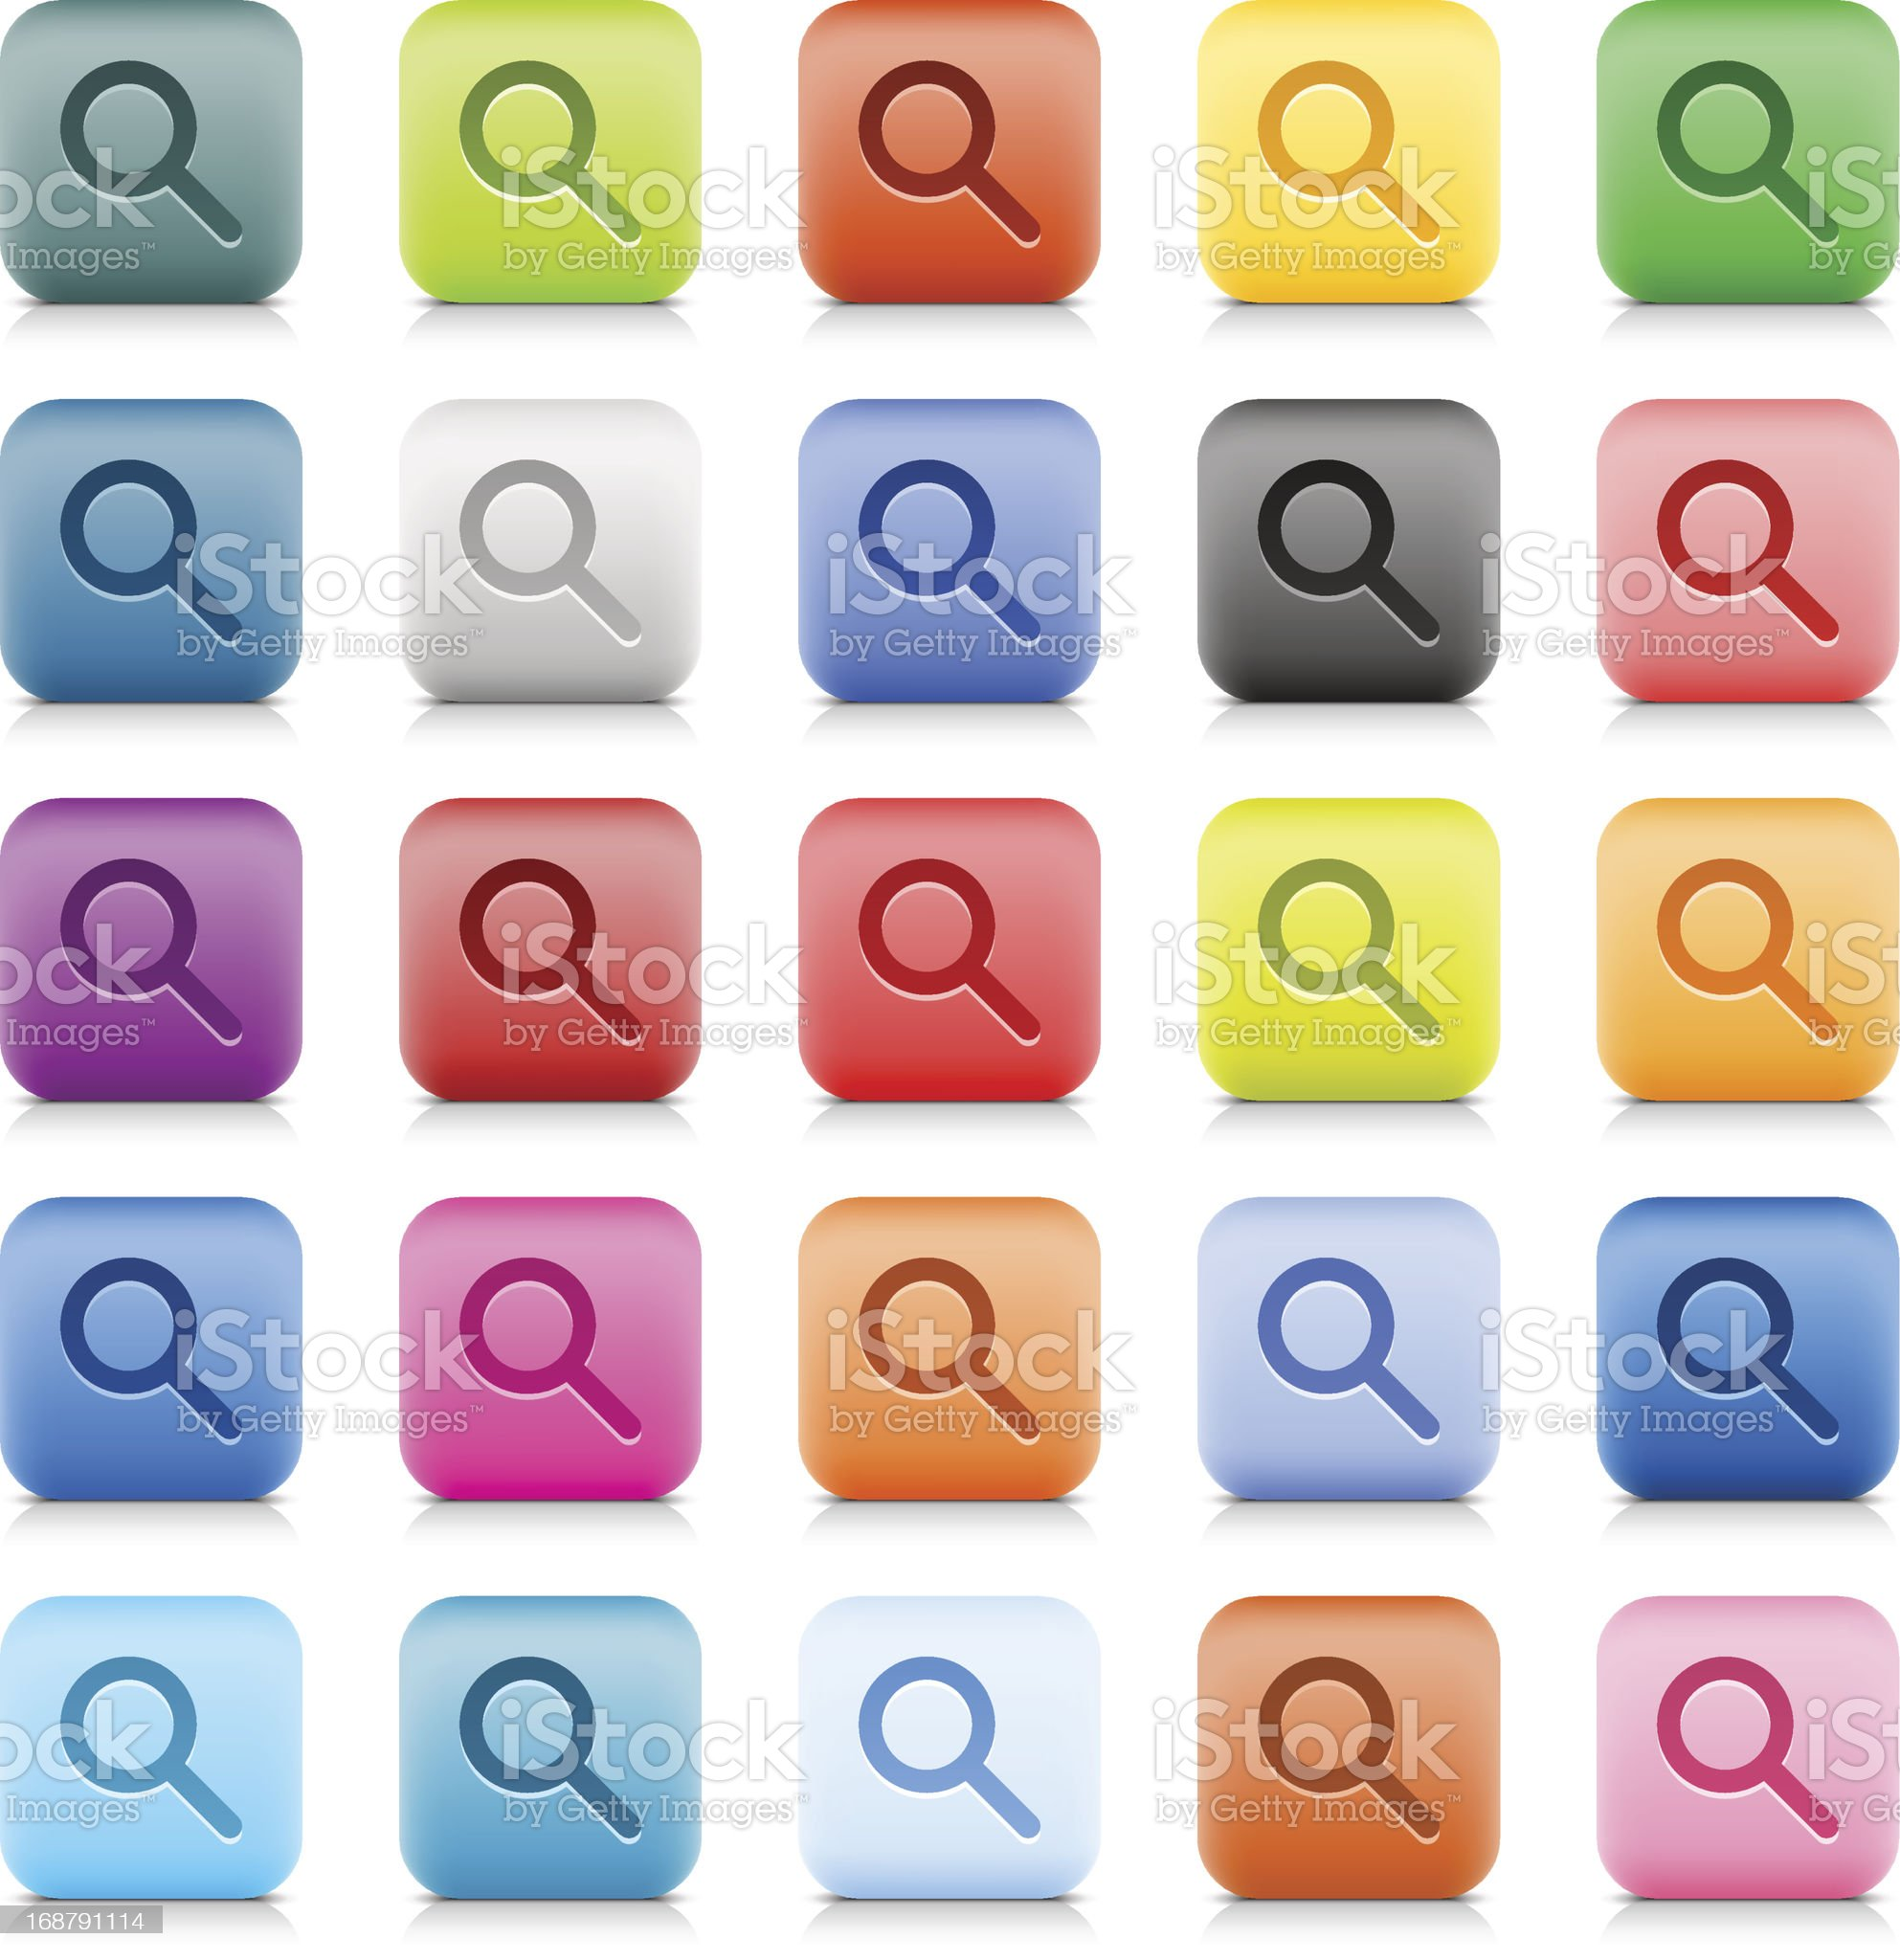 Loupe sign web button color stone satin style internet icon royalty-free stock vector art